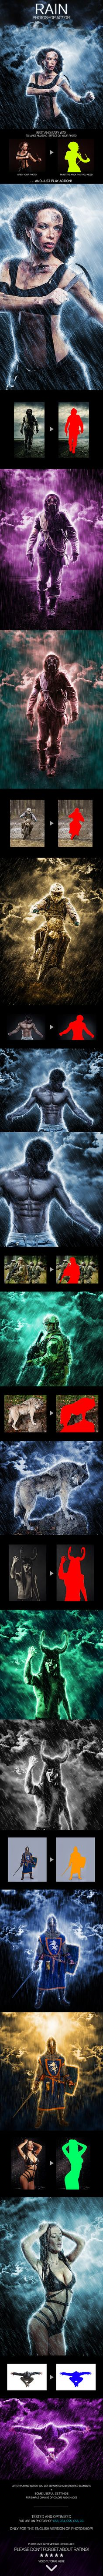 Rain Photoshop Action by Eugene-design Rain Action – this is an effect that creates a realistic rain on your photos. Action include a drop of rain, splashing and drippi Best Photoshop Actions, Cool Photoshop, Effects Photoshop, Photoshop Photos, Photoshop Design, Photoshop Photography, Photoshop Tutorial, Photography Tutorials, Creative Photography